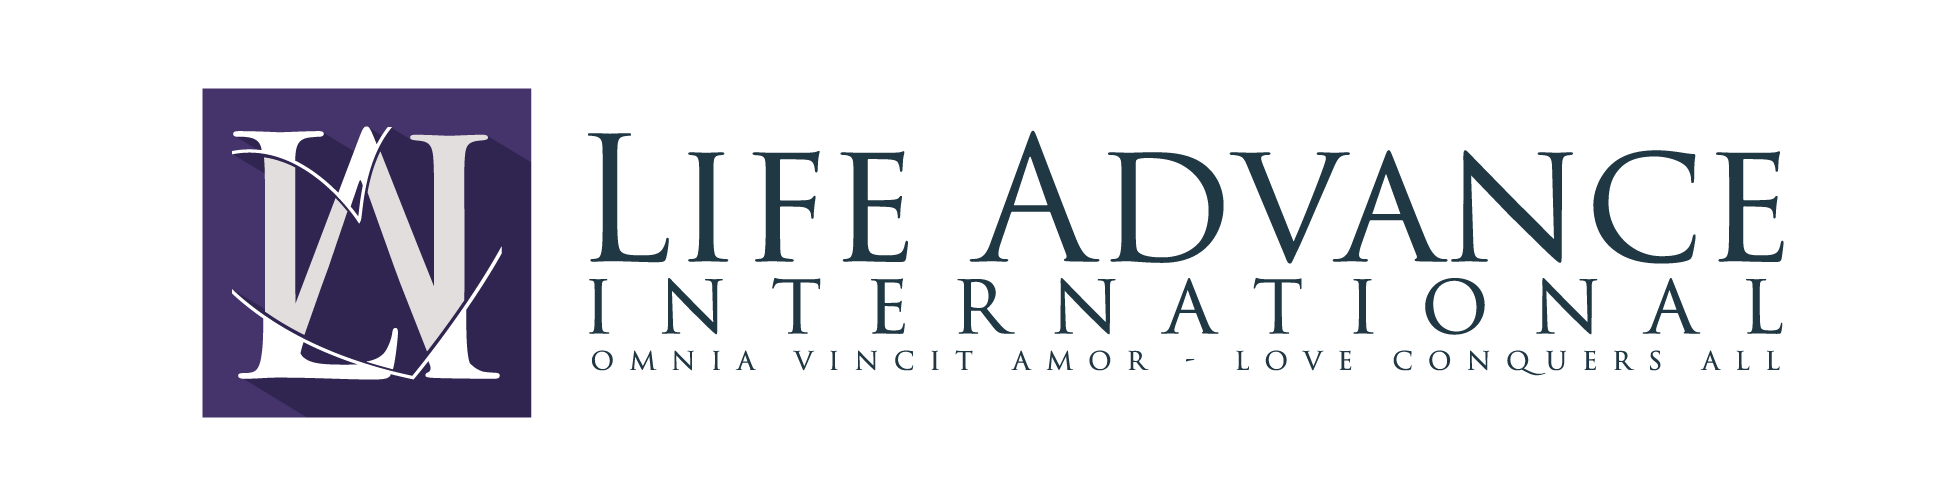 Life Advance International